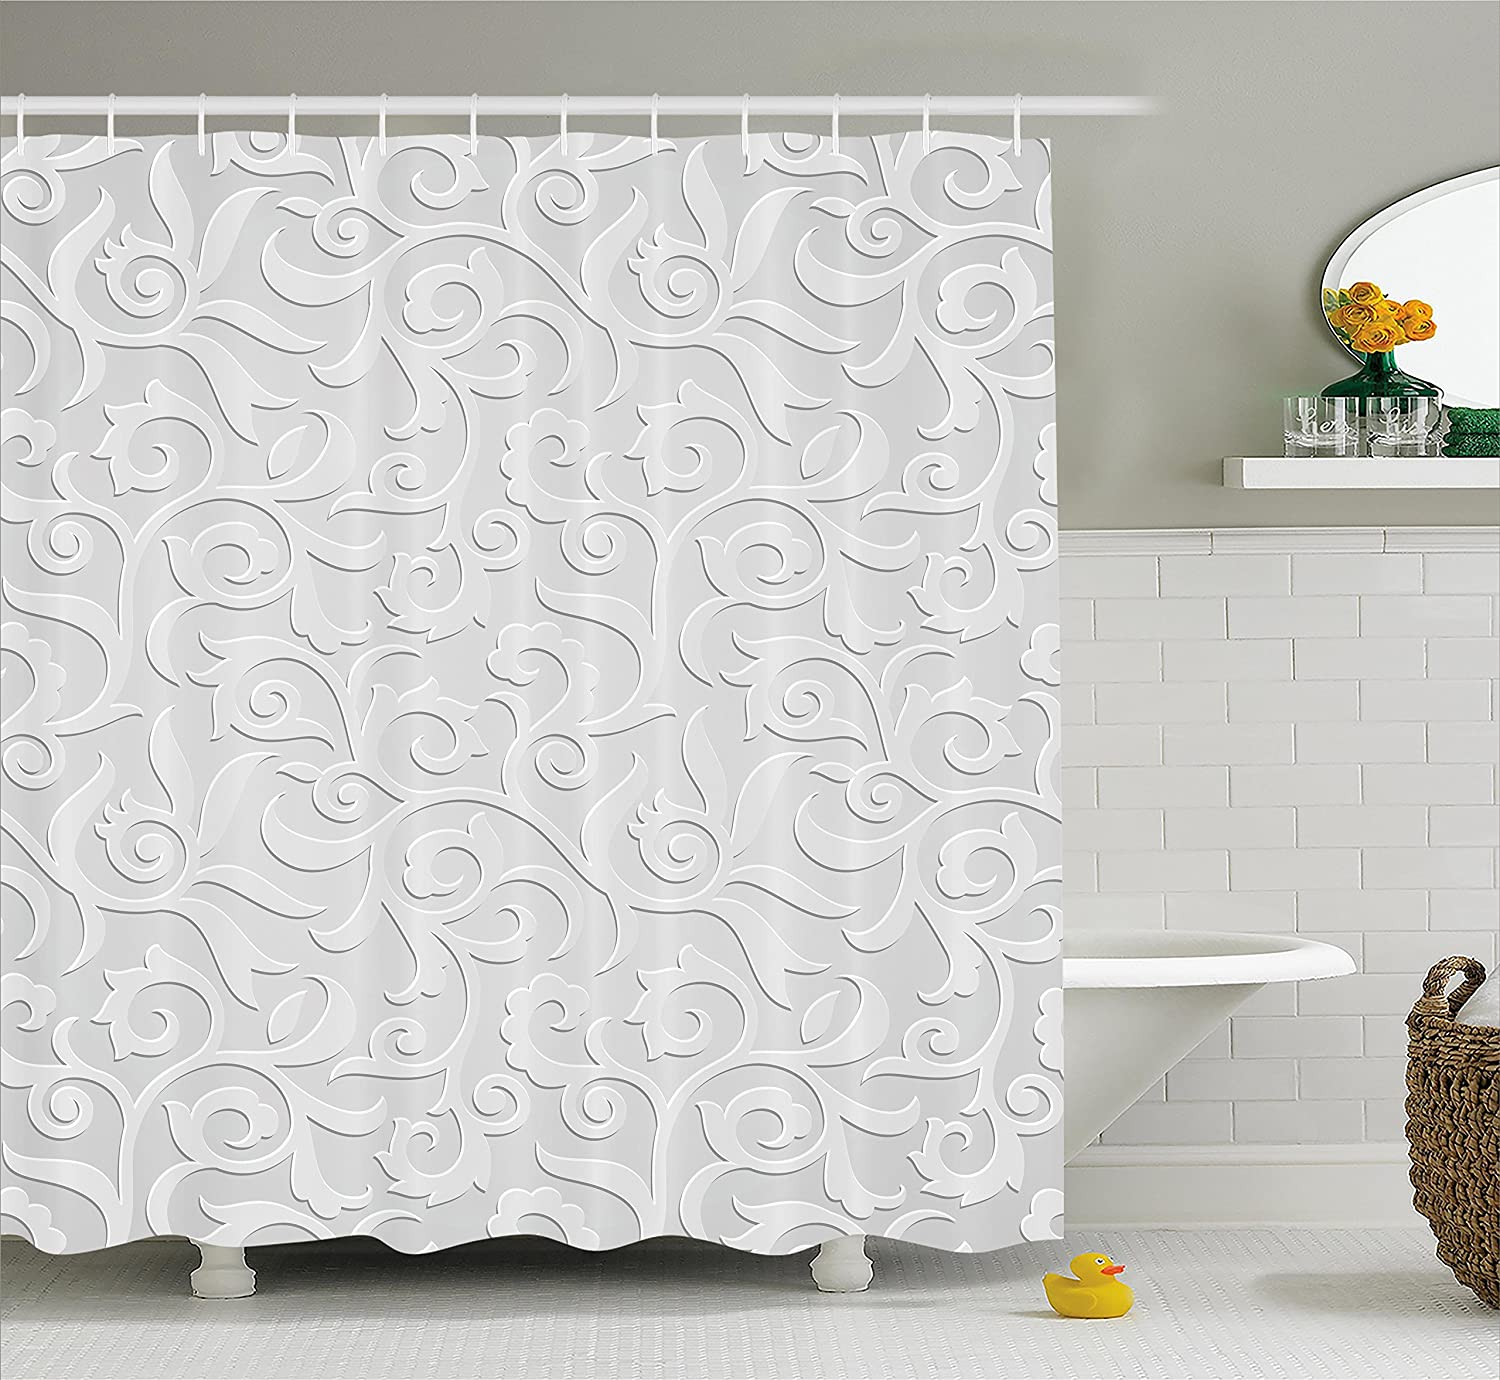 Amazon.com: Country Decor Shower Curtain Set By Ambesonne, Waterlilies  Flowers And Dragonflies Simplistic Home Decoration Eco Nature Theme  Artwork, ...